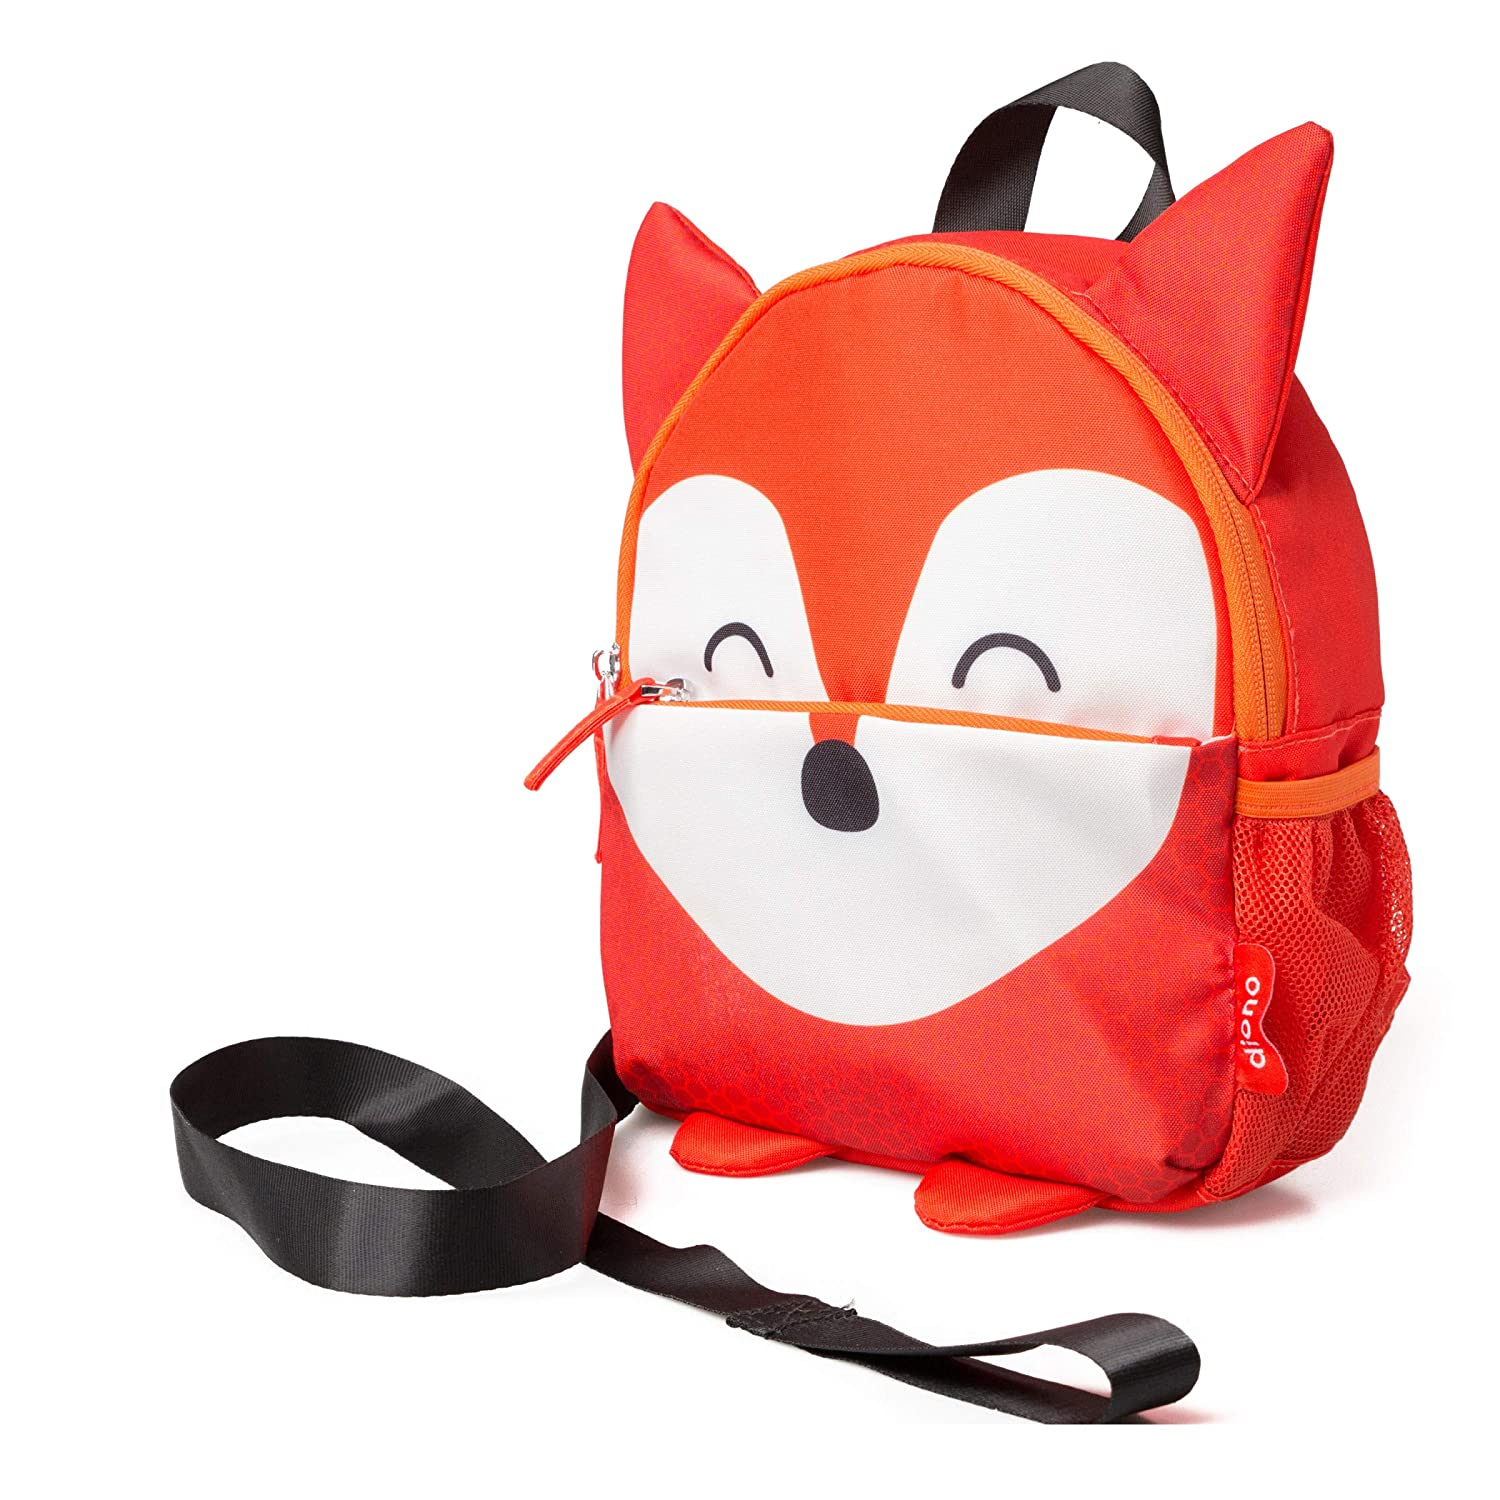 Diono Fox Character Kids Mini Back Pack Toddler Leash & Harness for Child Safety, with Padded Shoulder Straps for Child Comfort